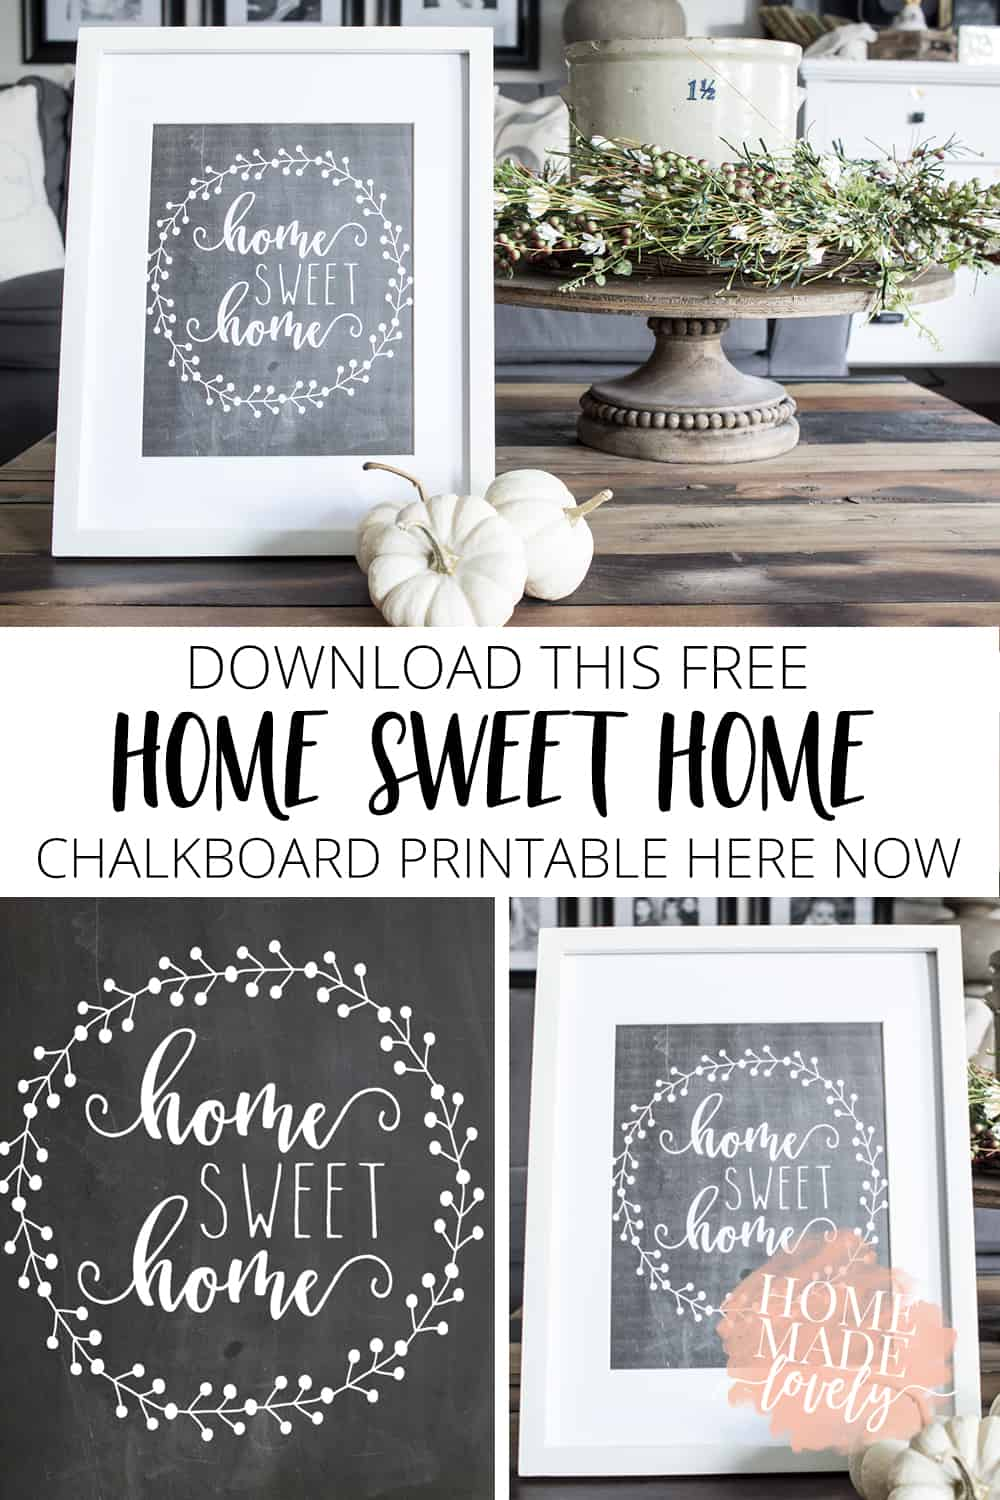 graphic regarding Free Chalkboard Printable identified as Obtain This Cost-free Dwelling Lovable House Chalkboard Printable Listed here By now